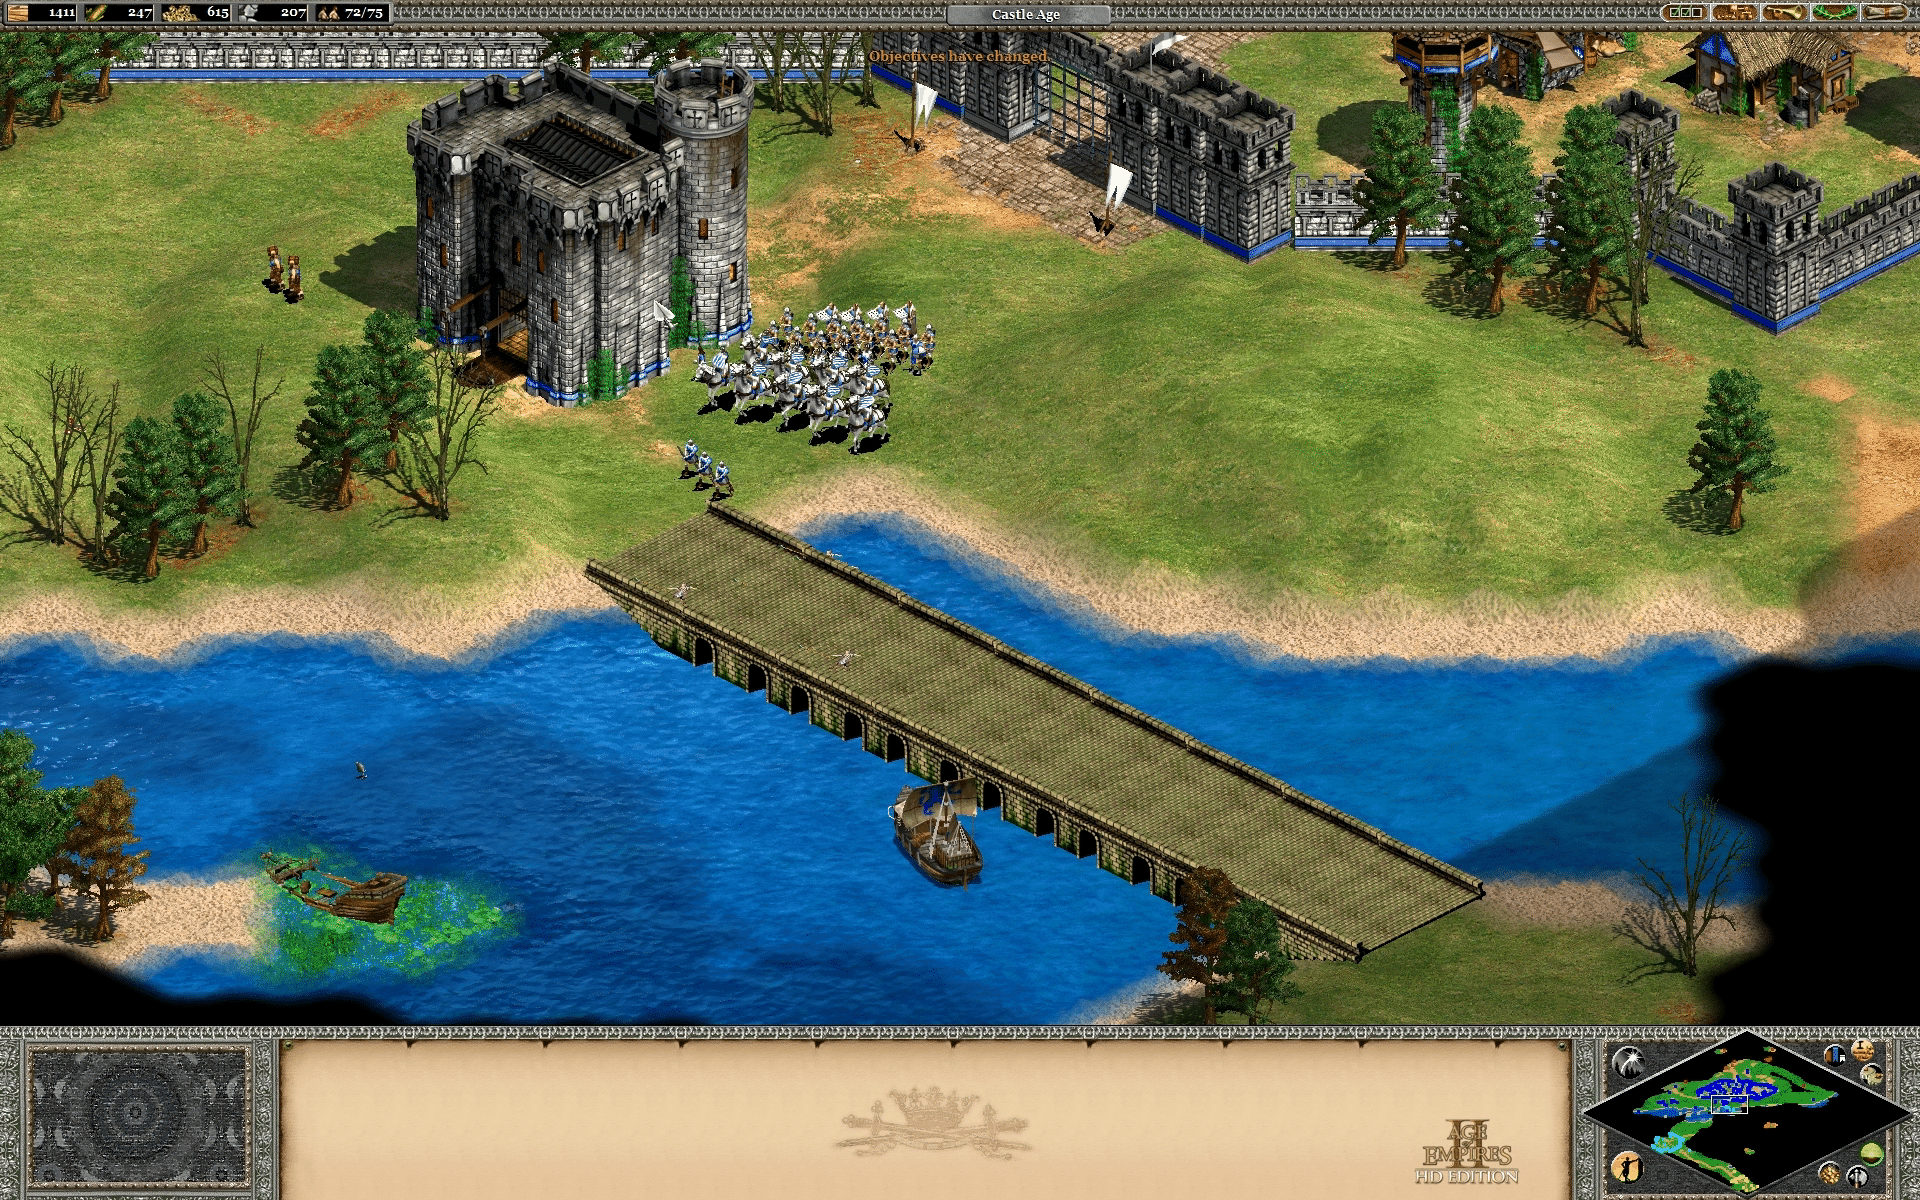 Age of Empires II: Age of Kings - Joan of Arc French Campaign - Mission 02: The Maid of Orleans